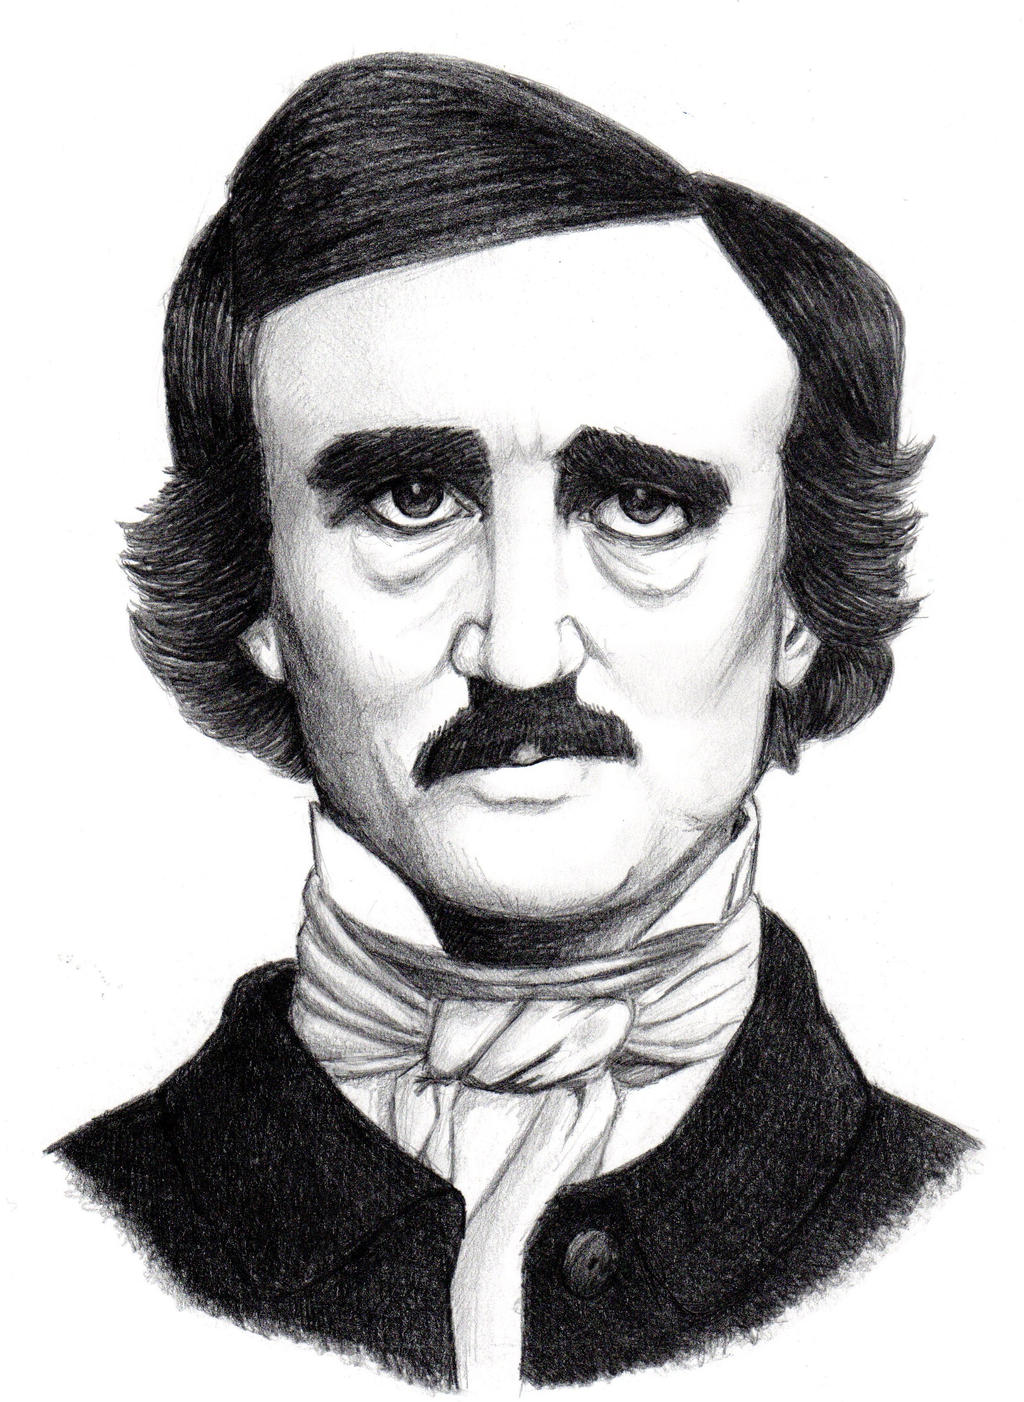 edgar allan poe coloring pages - photo#20